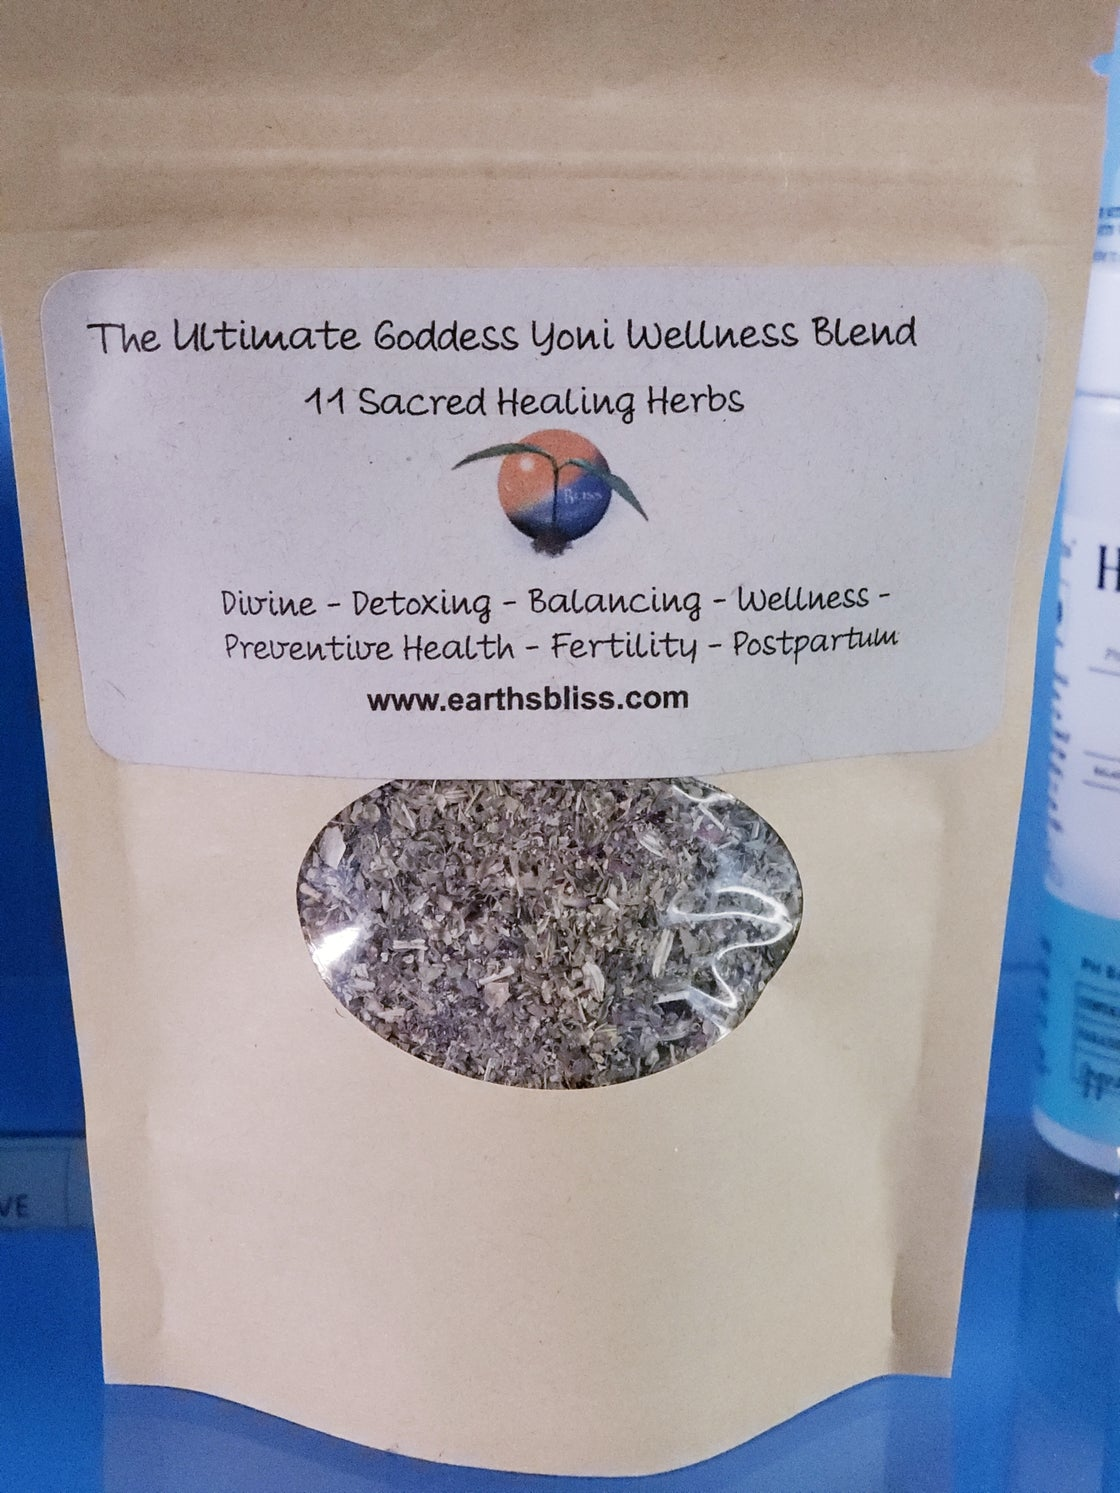 Image of The Ultimate Goddess Yoni Wellness Blend